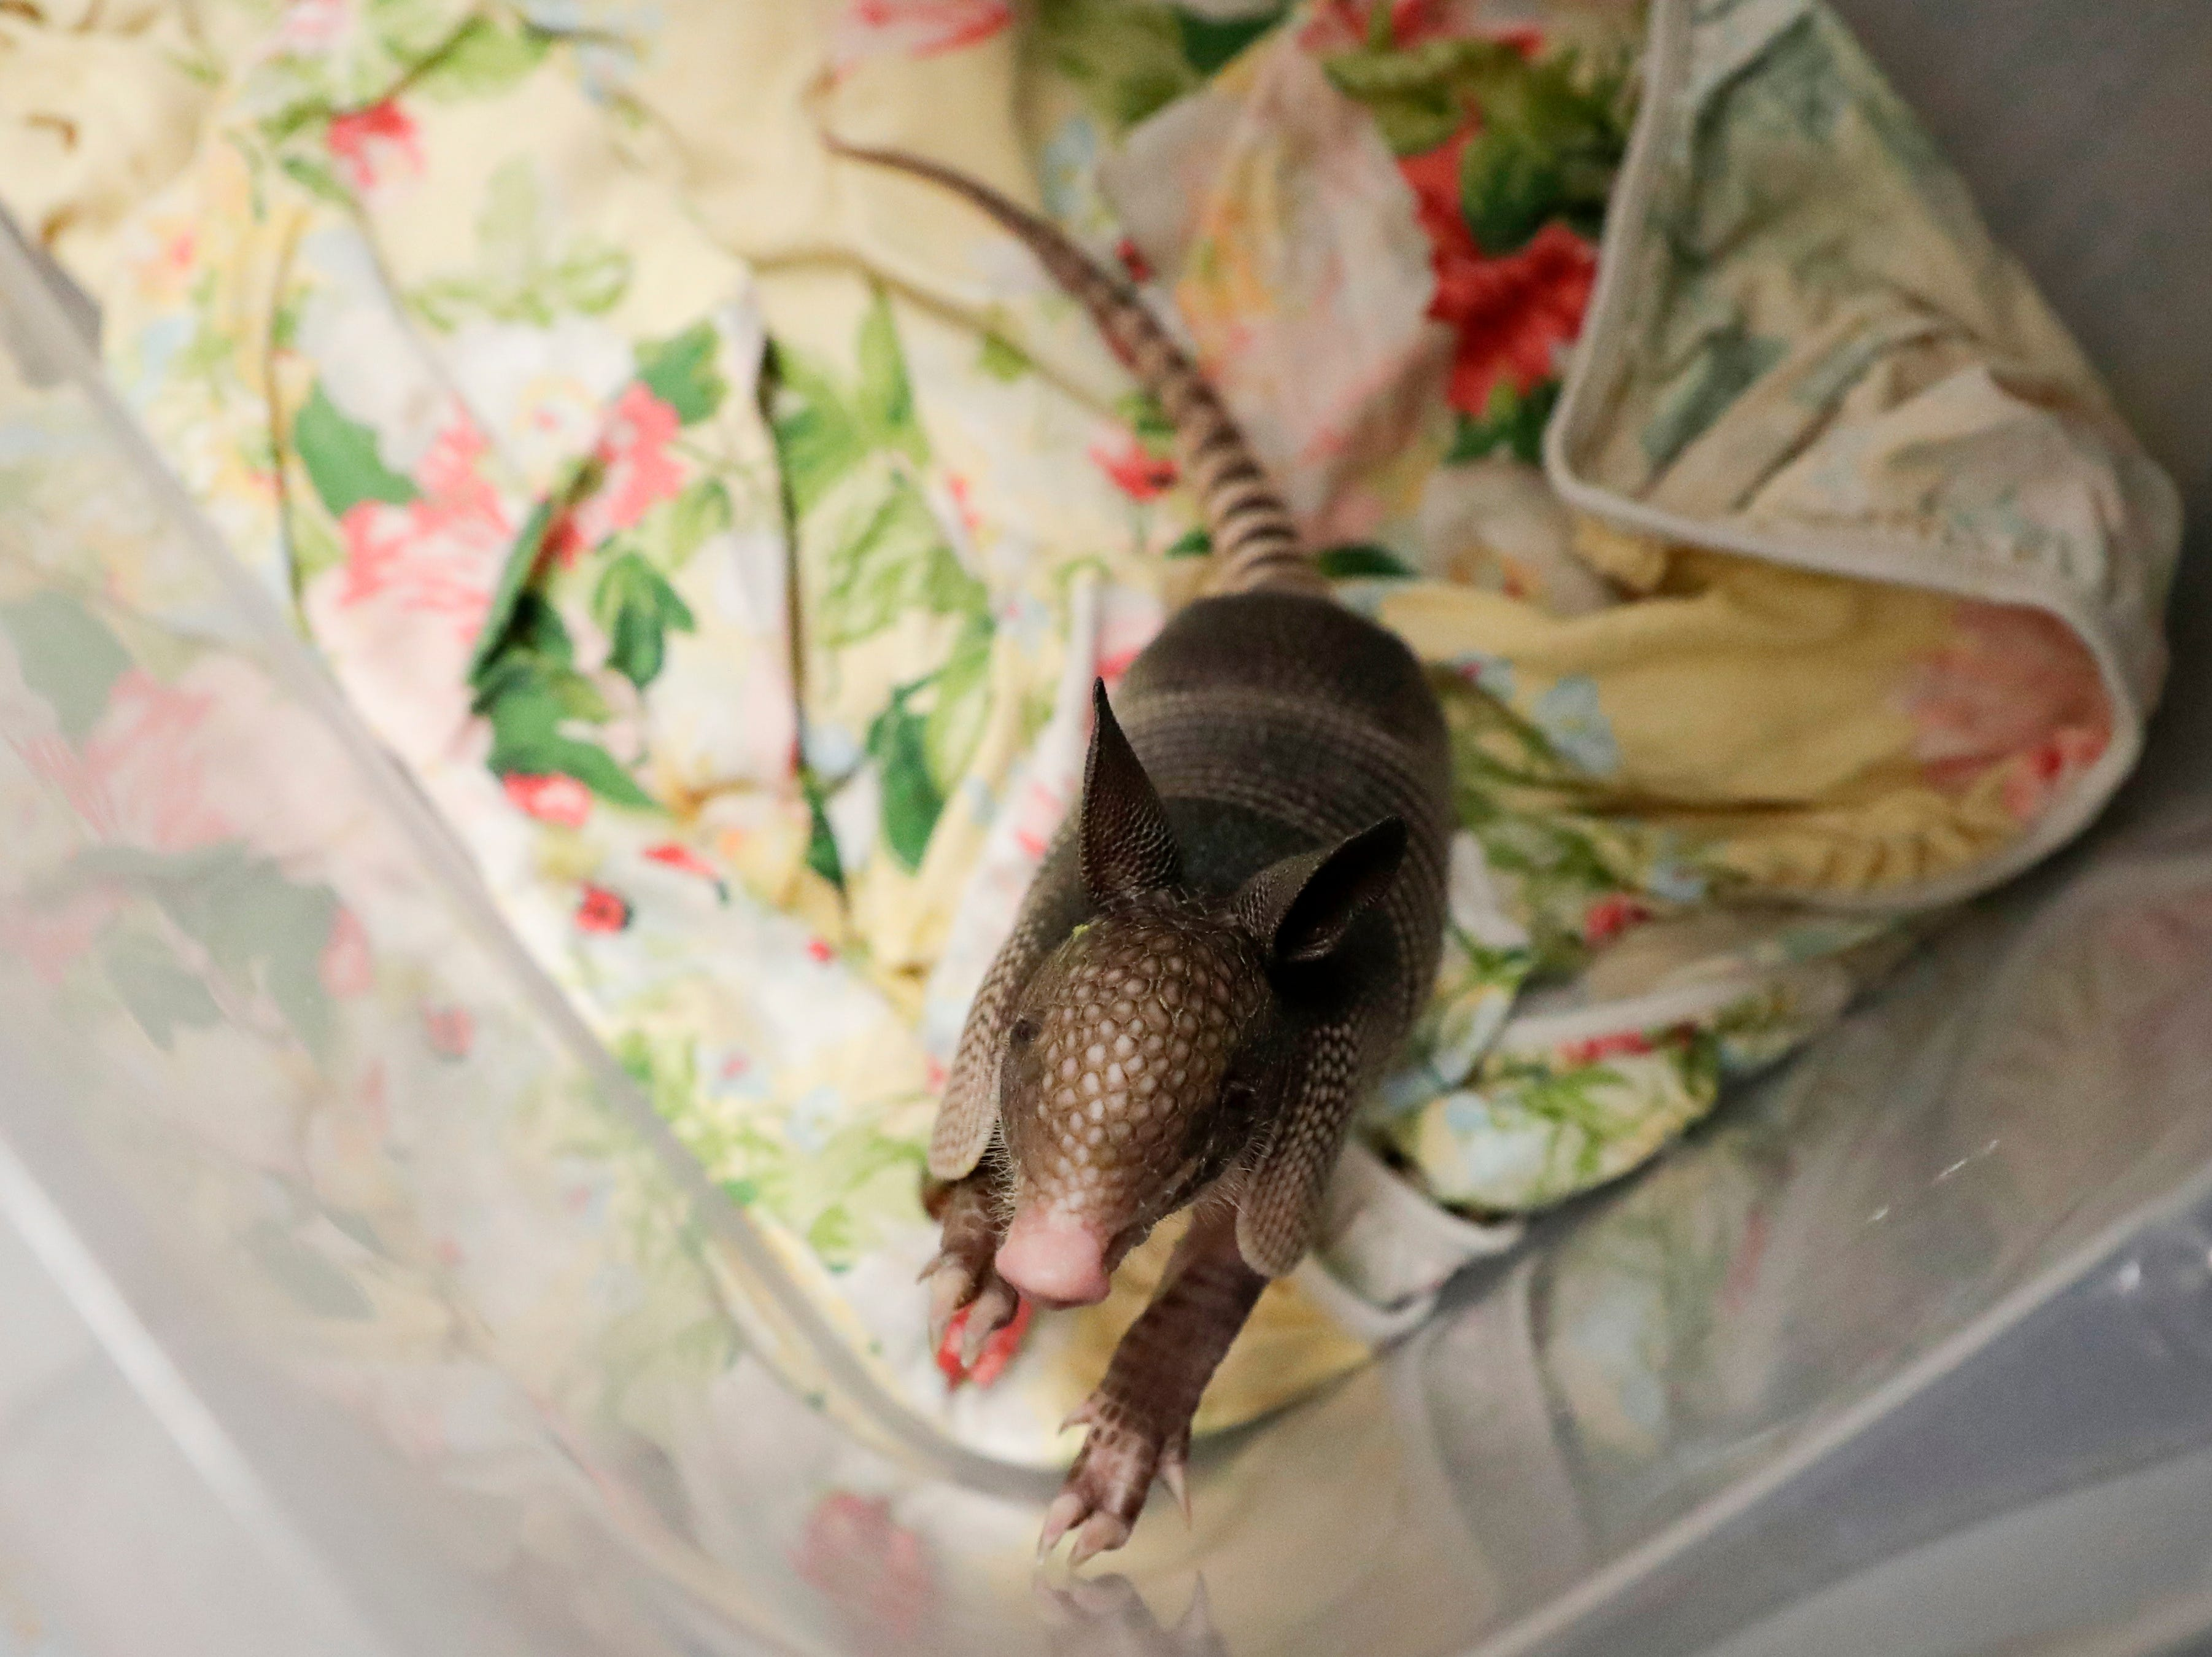 A baby armadillo looks around from its enclosure at St. Francis Wildlife Hospital Monday, May 13, 2019.